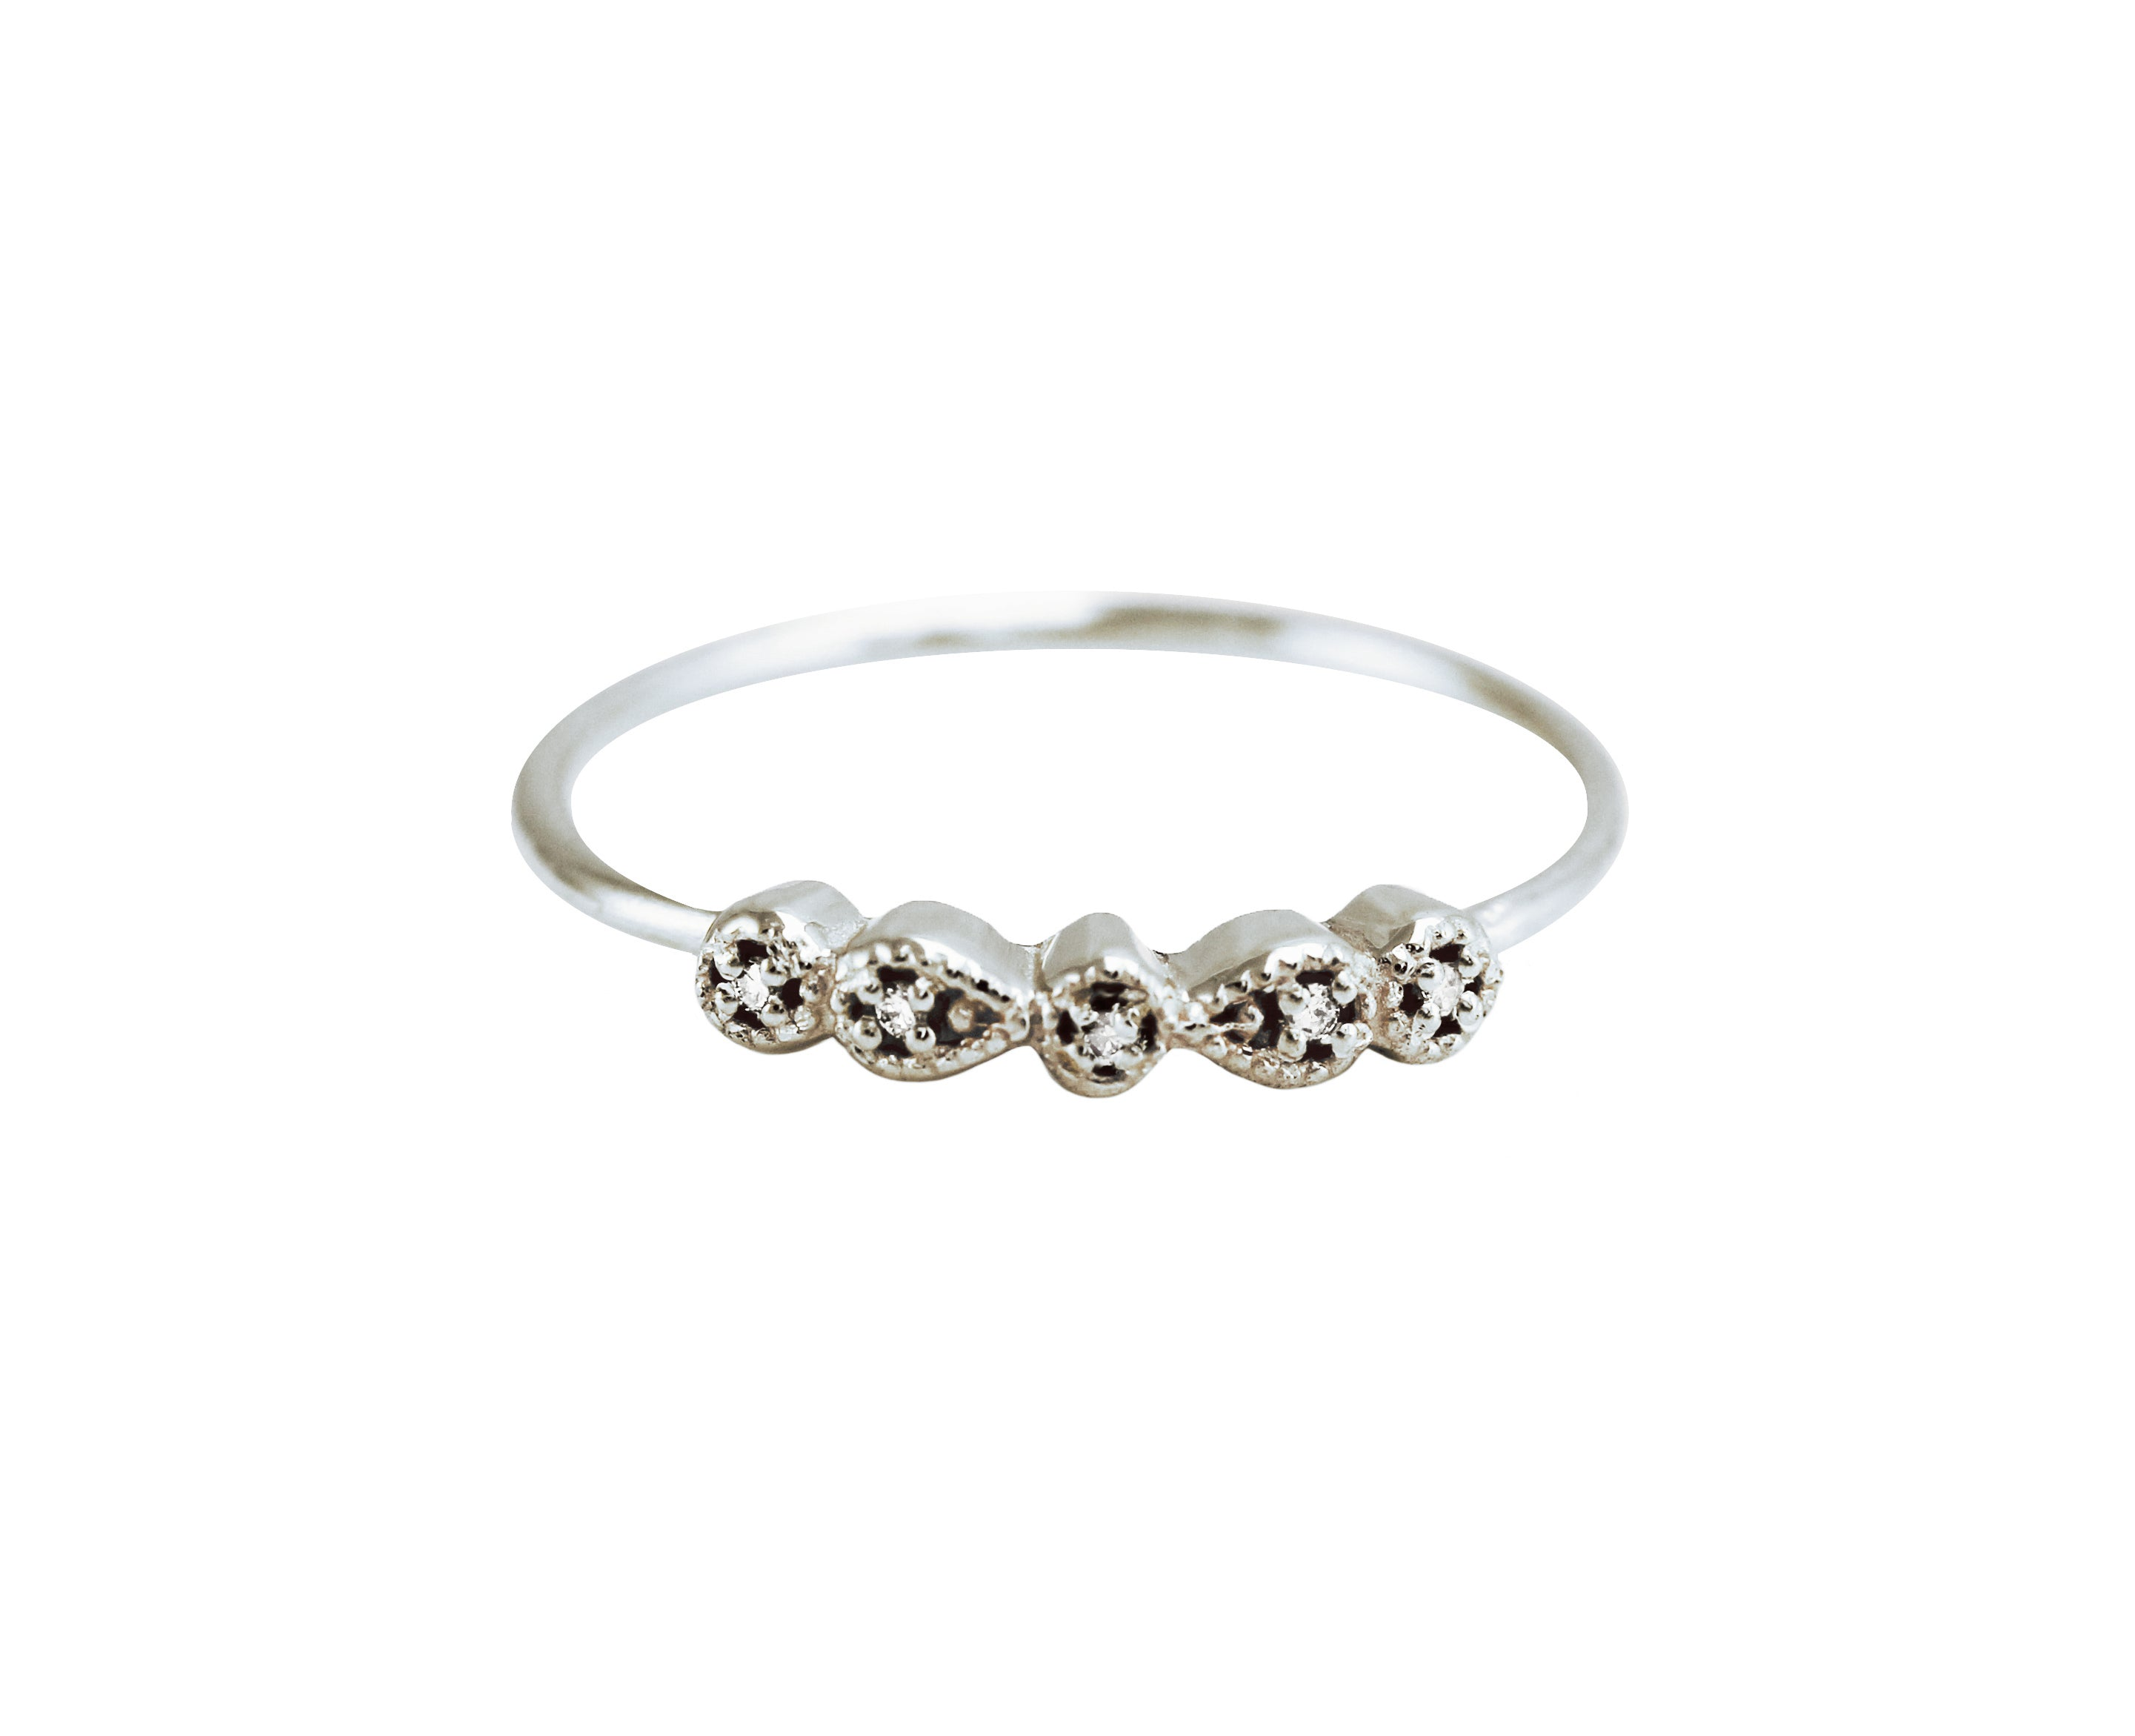 MINI ANTOINETTE DIAMOND RING